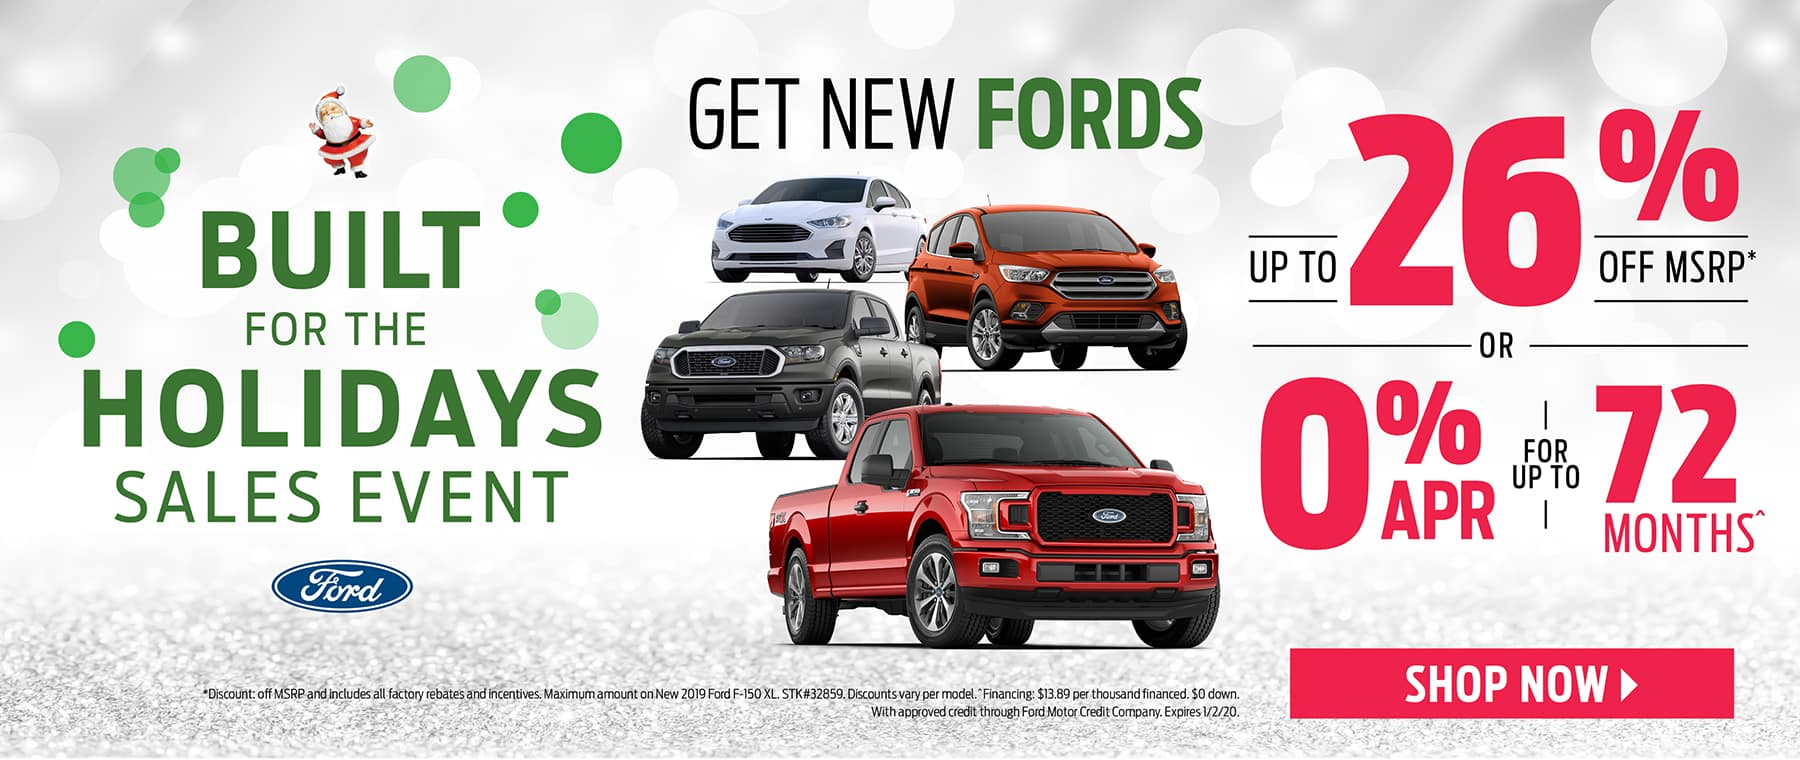 Get New Fords